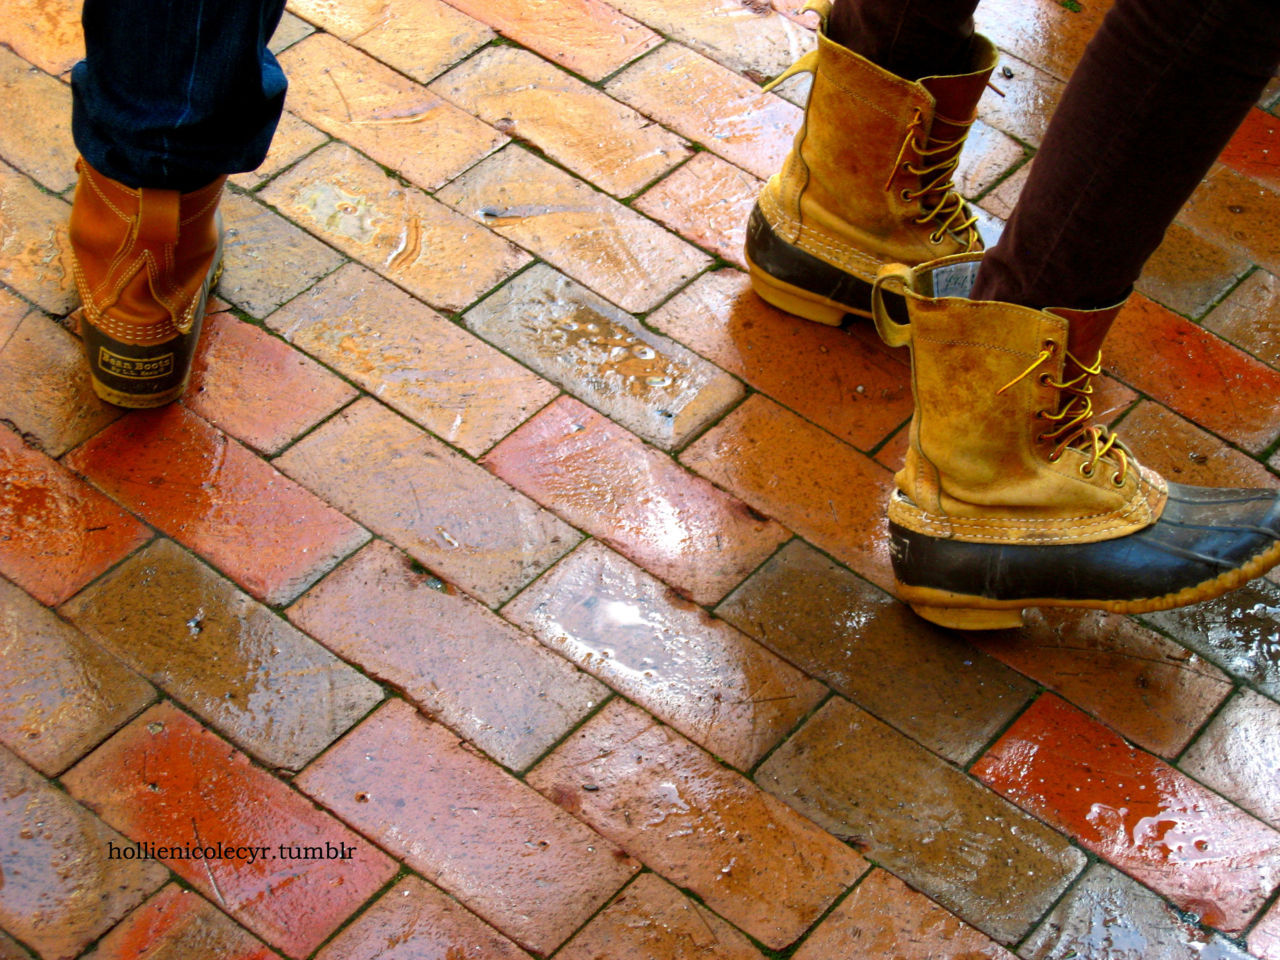 llbeanpr:  Love the brick colors